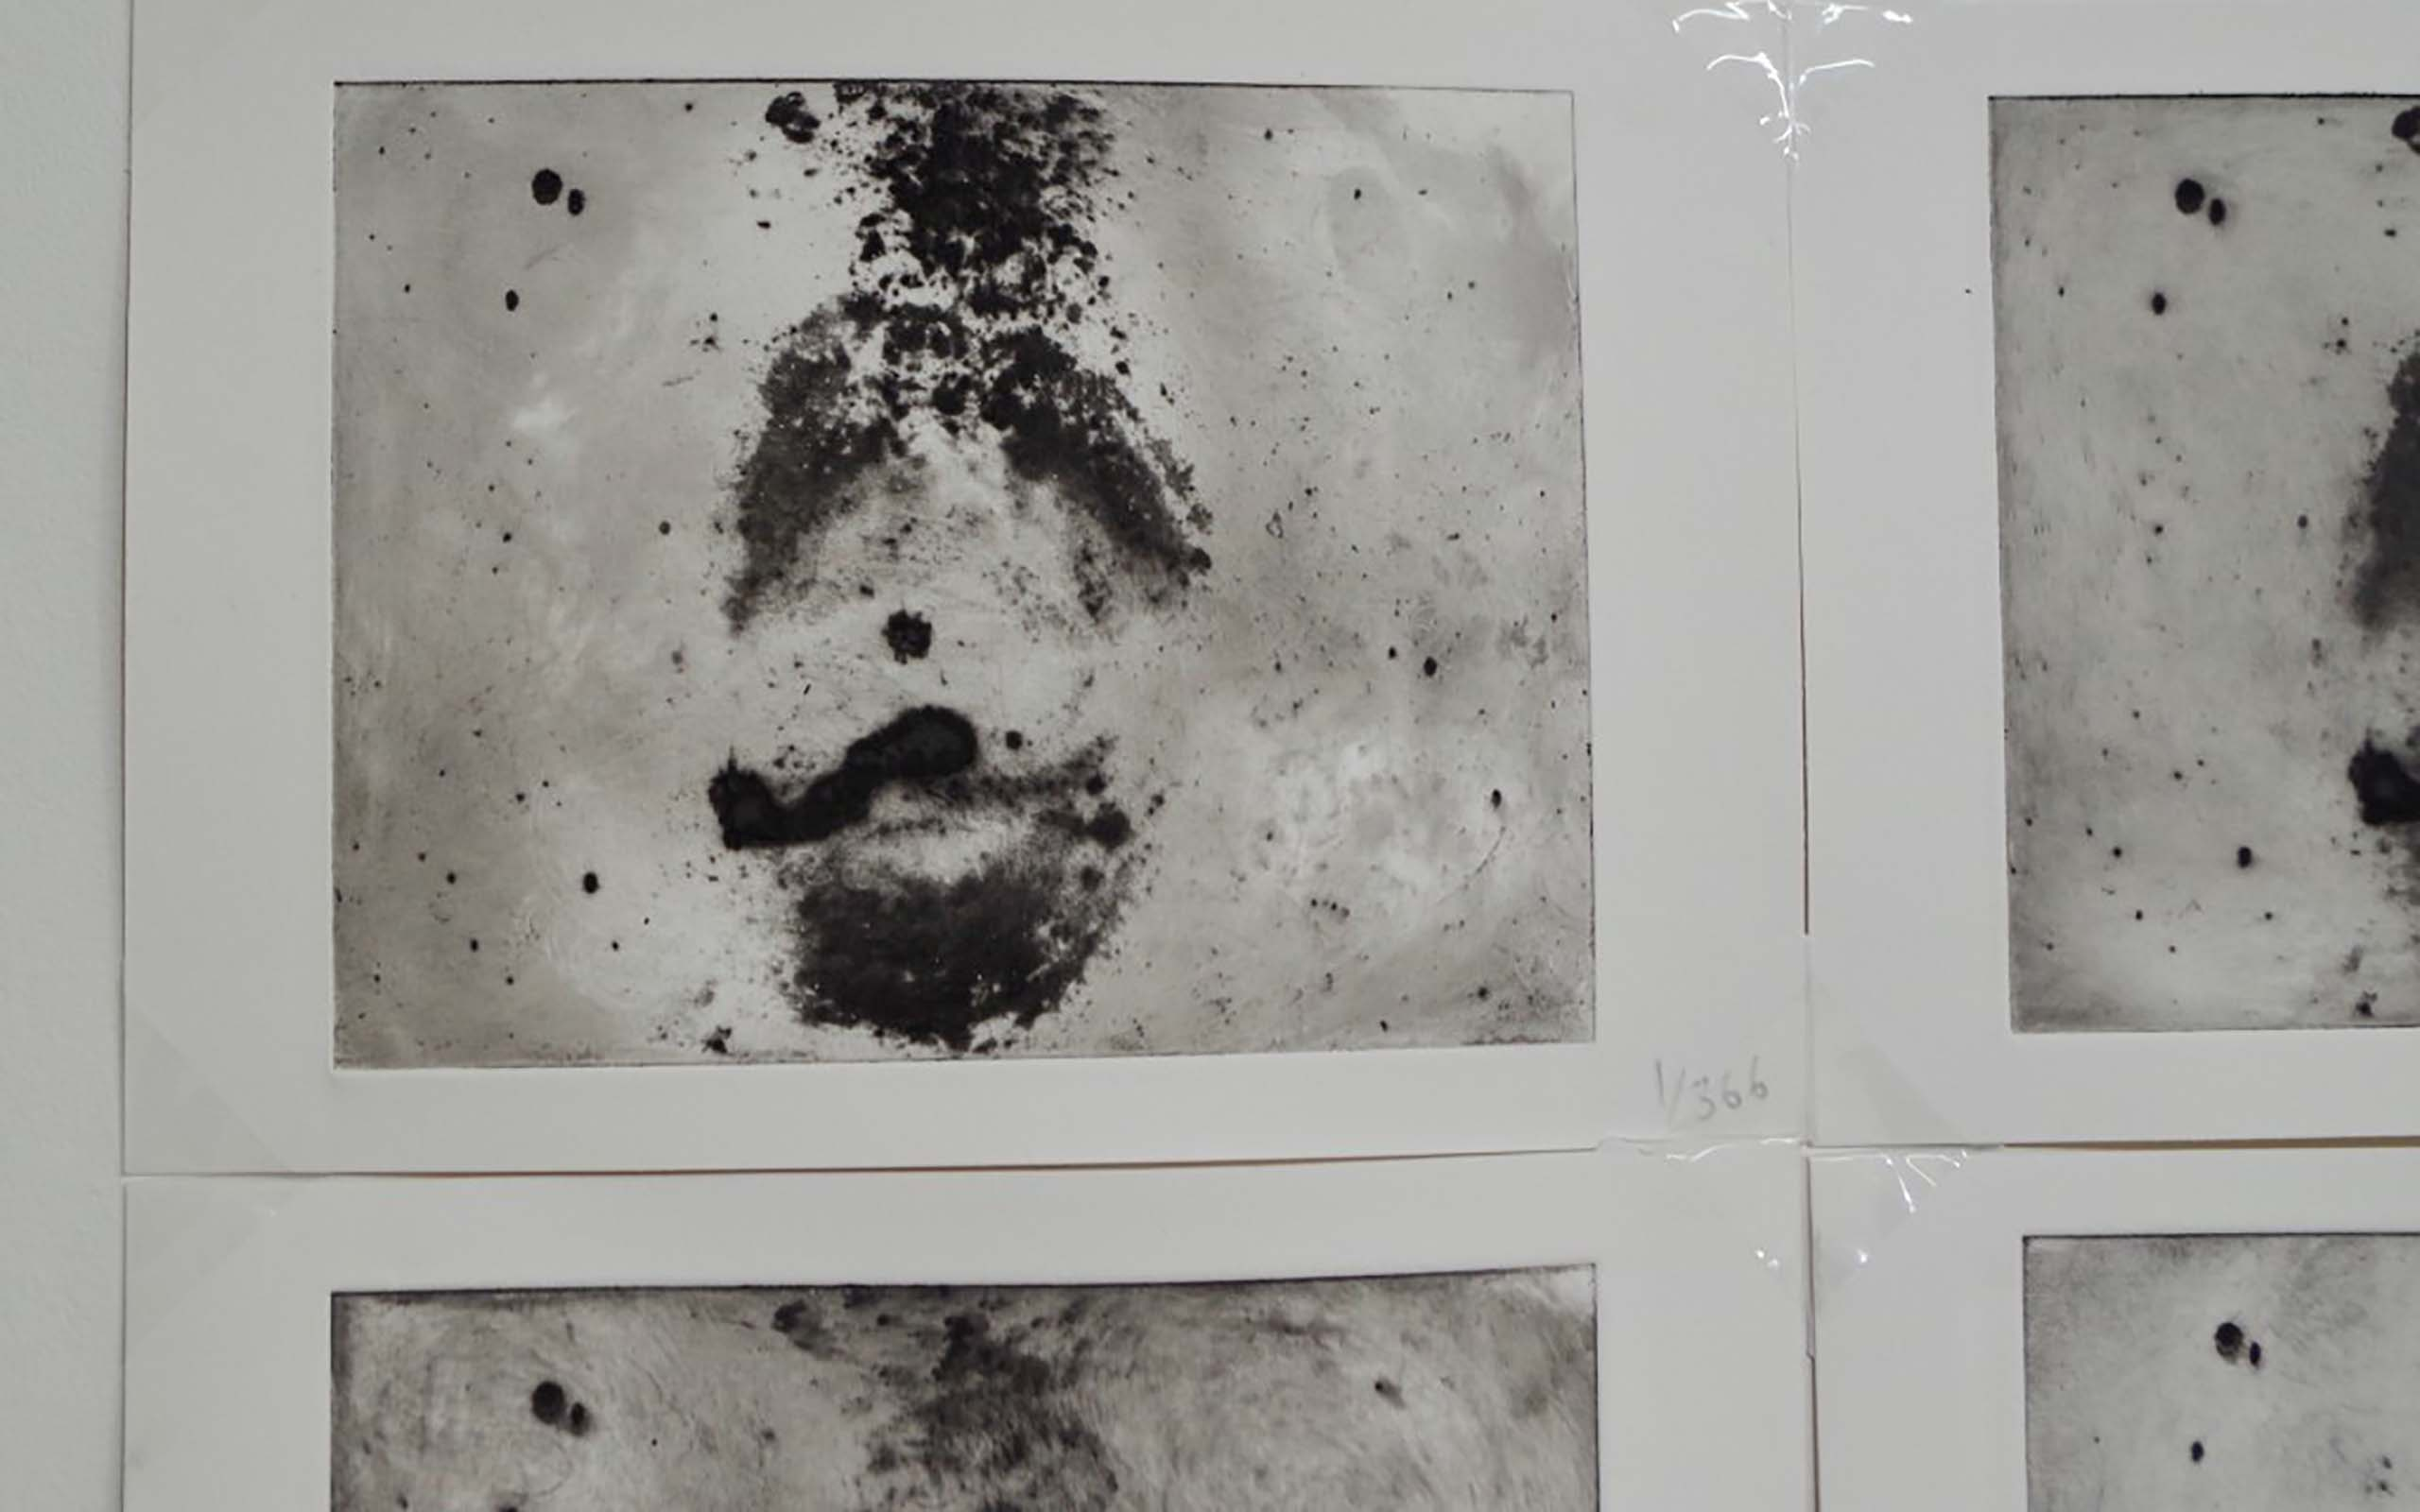 Angela Bartram's 366:366 (eventually) - exhalation on an etching plate